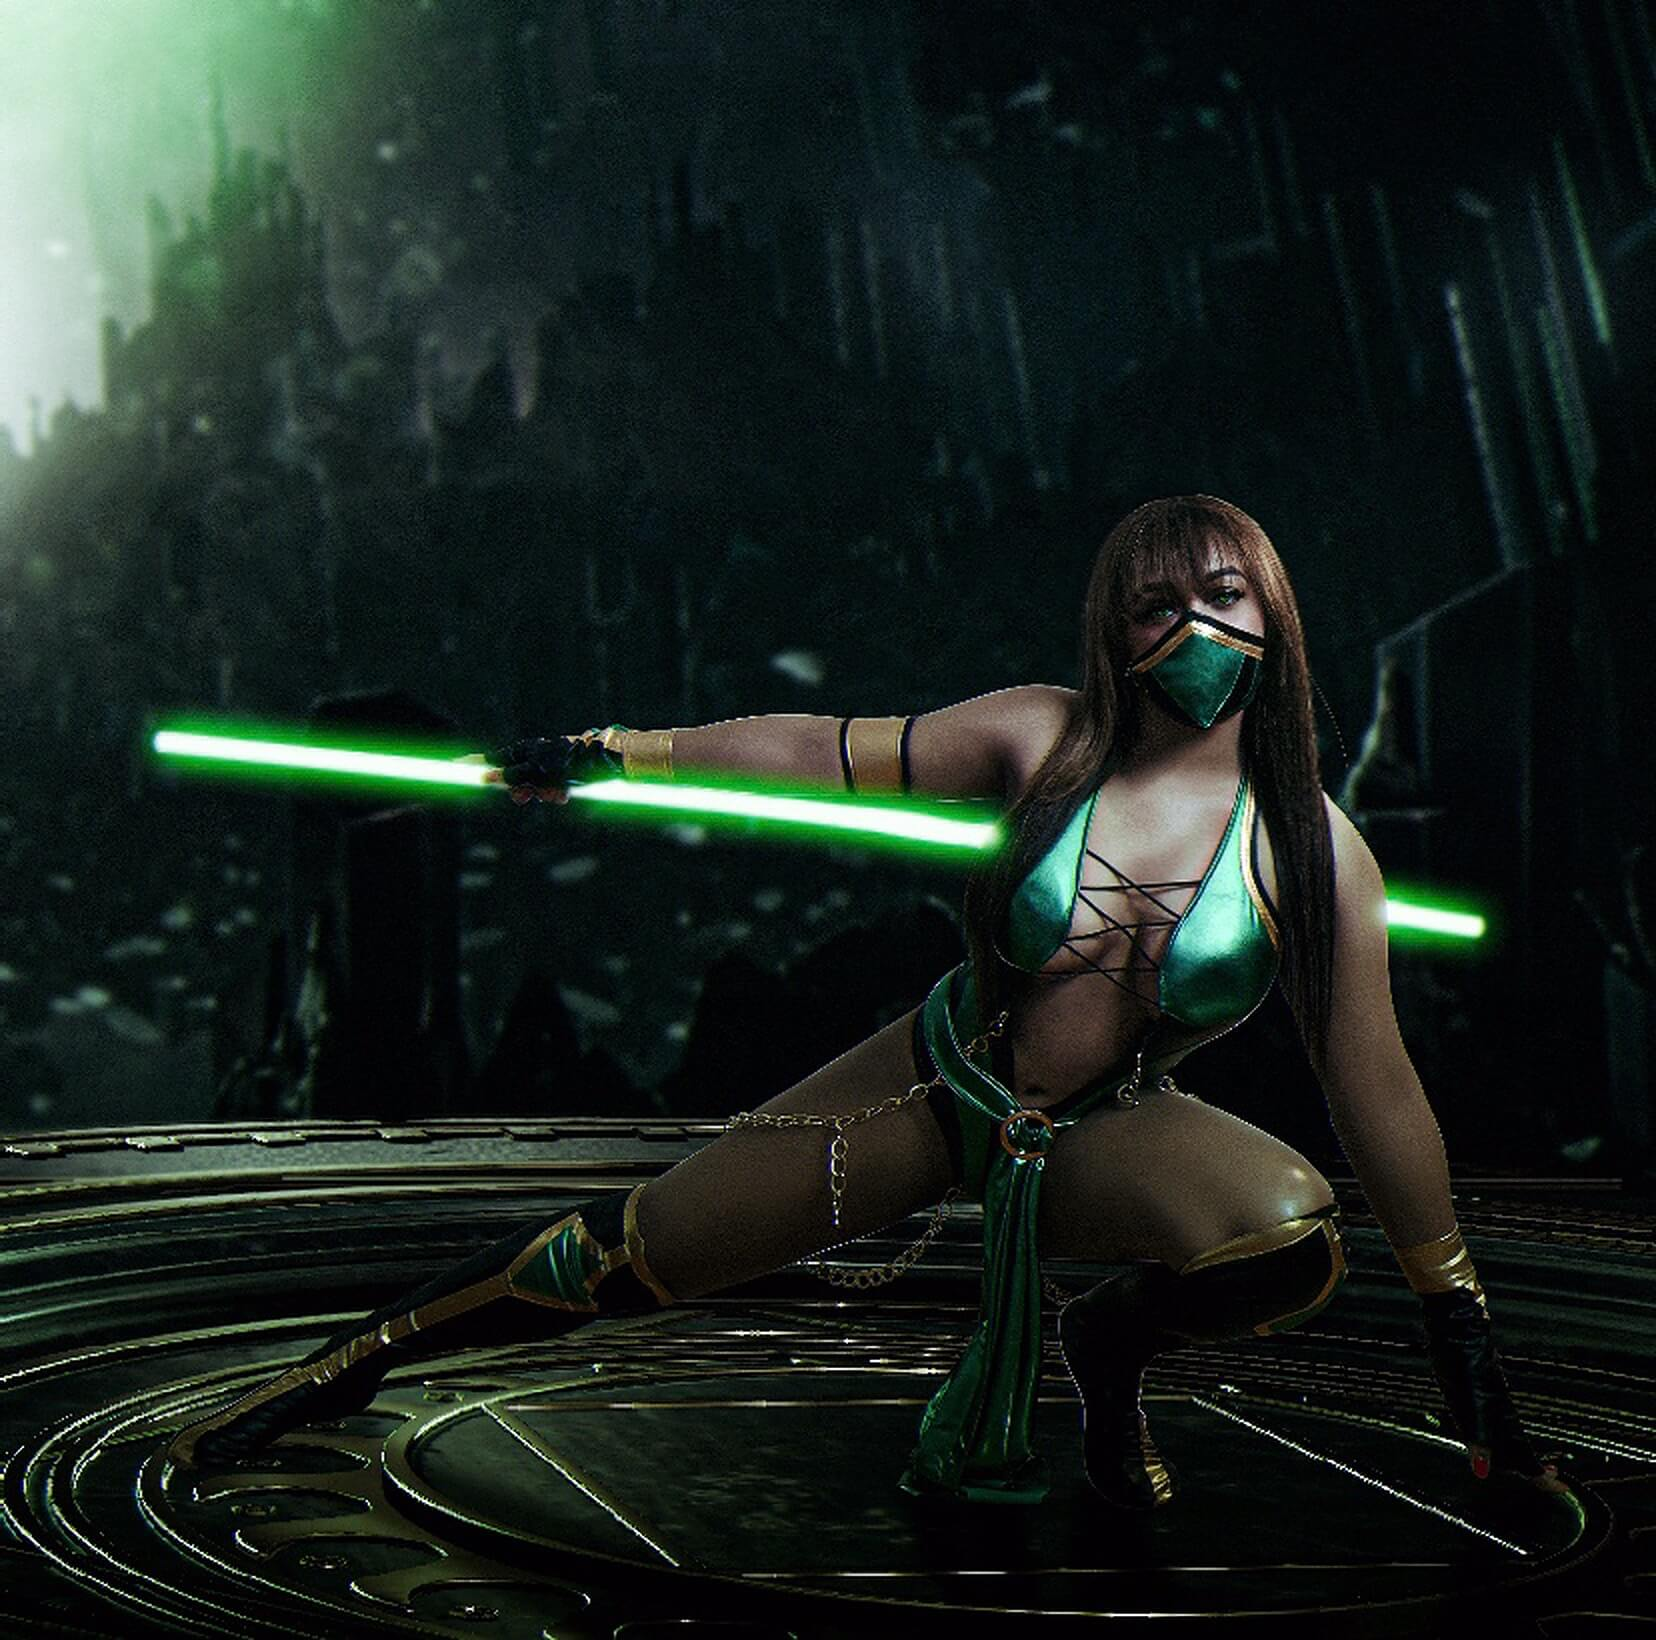 Briana-Amerson-cosplay-outfit-Psychokittykatgaming-gallery